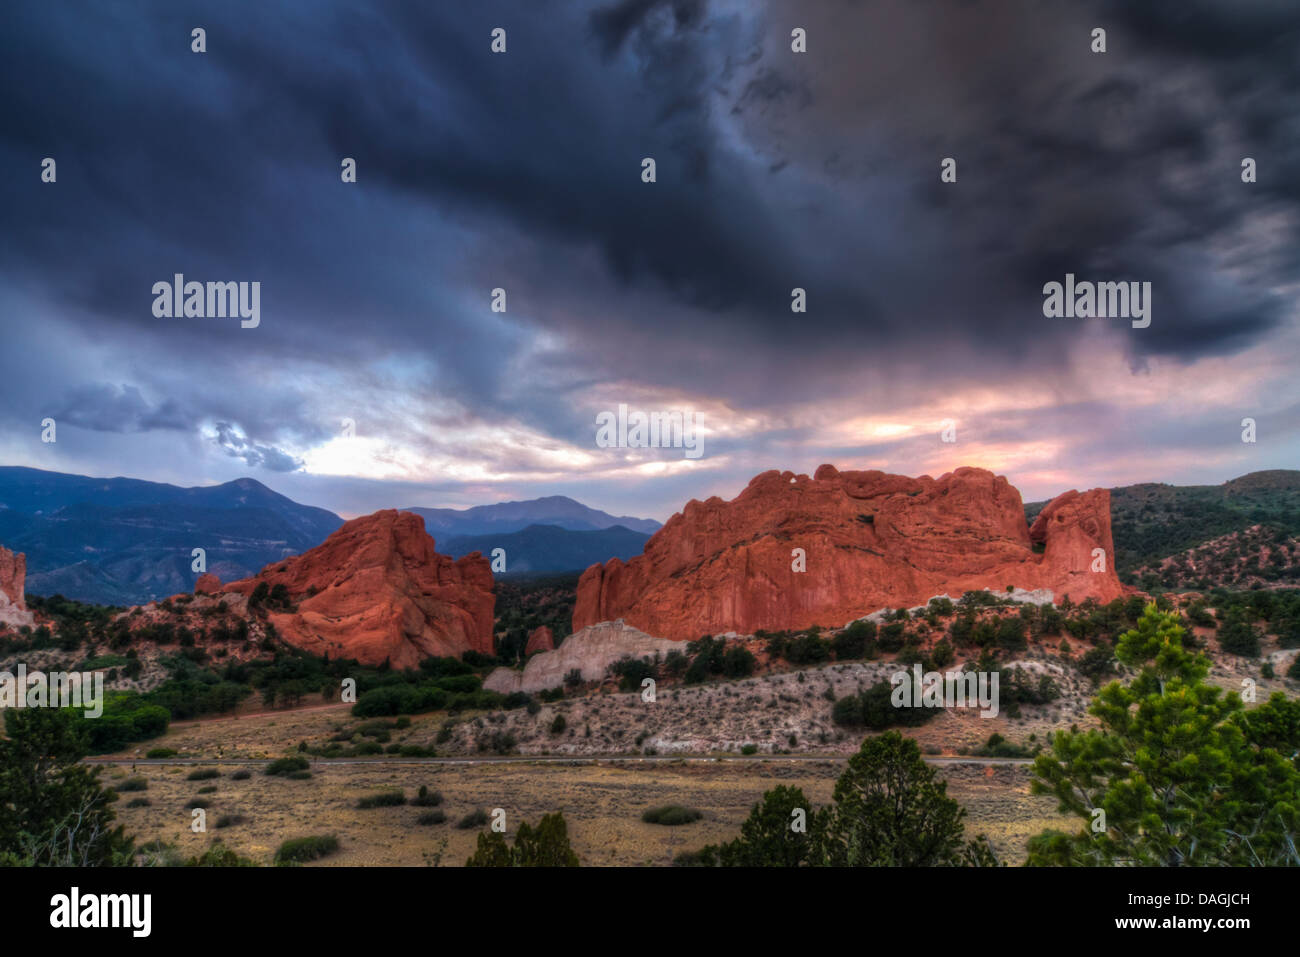 Storm clouds at sunset over Pikes Peak and the red rock formations of Garden of the Gods Park in Colorado Springs, - Stock Image